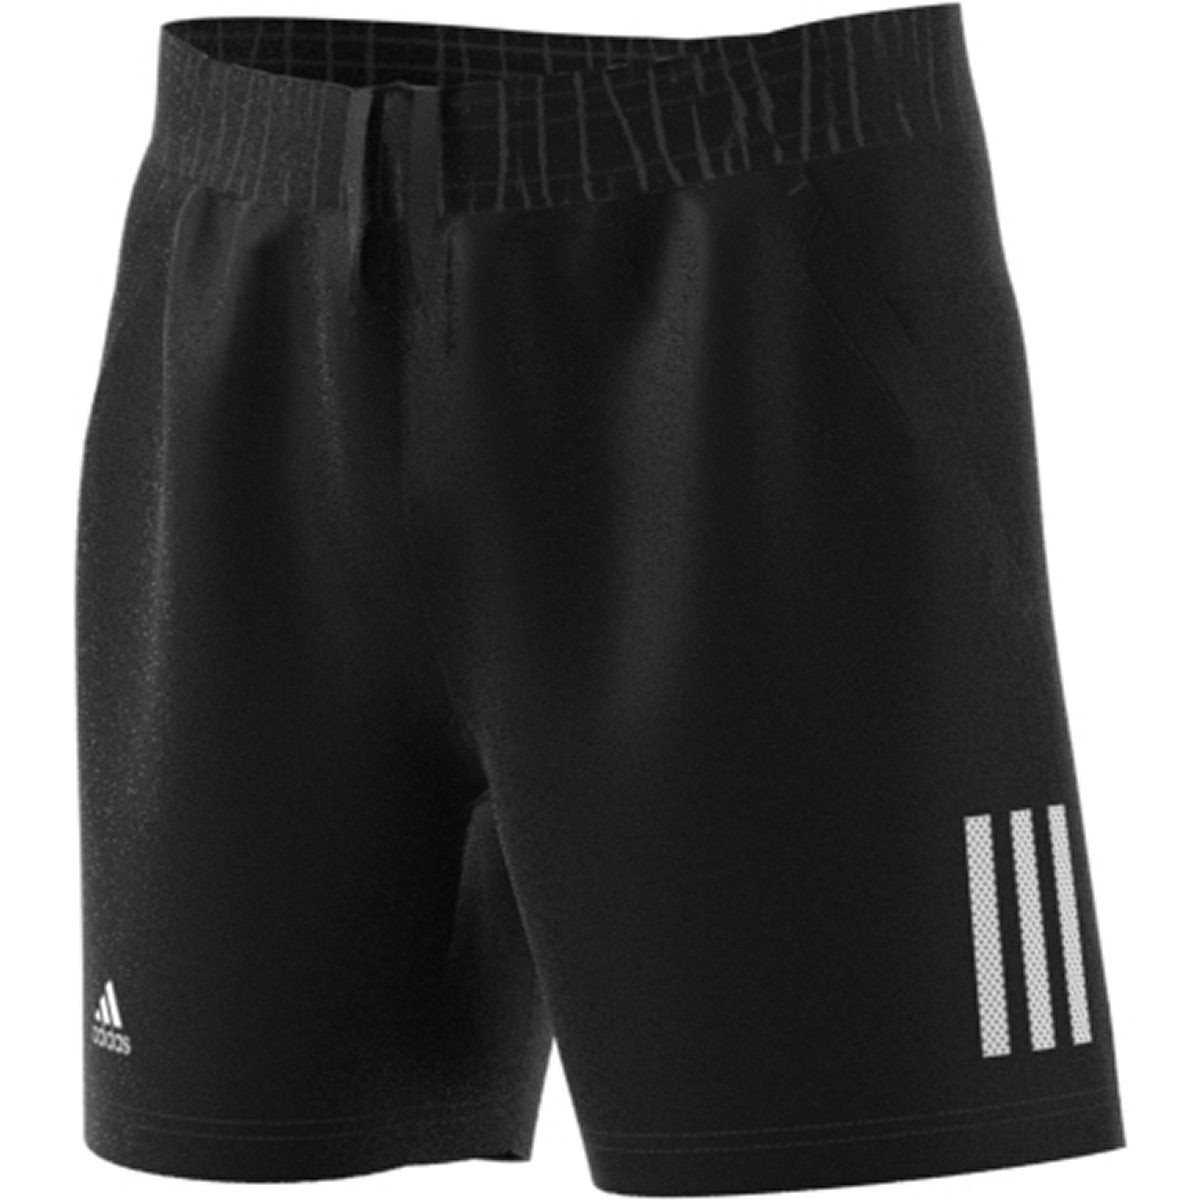 Adidas Boys Club 3STR Fall Short   Black/White